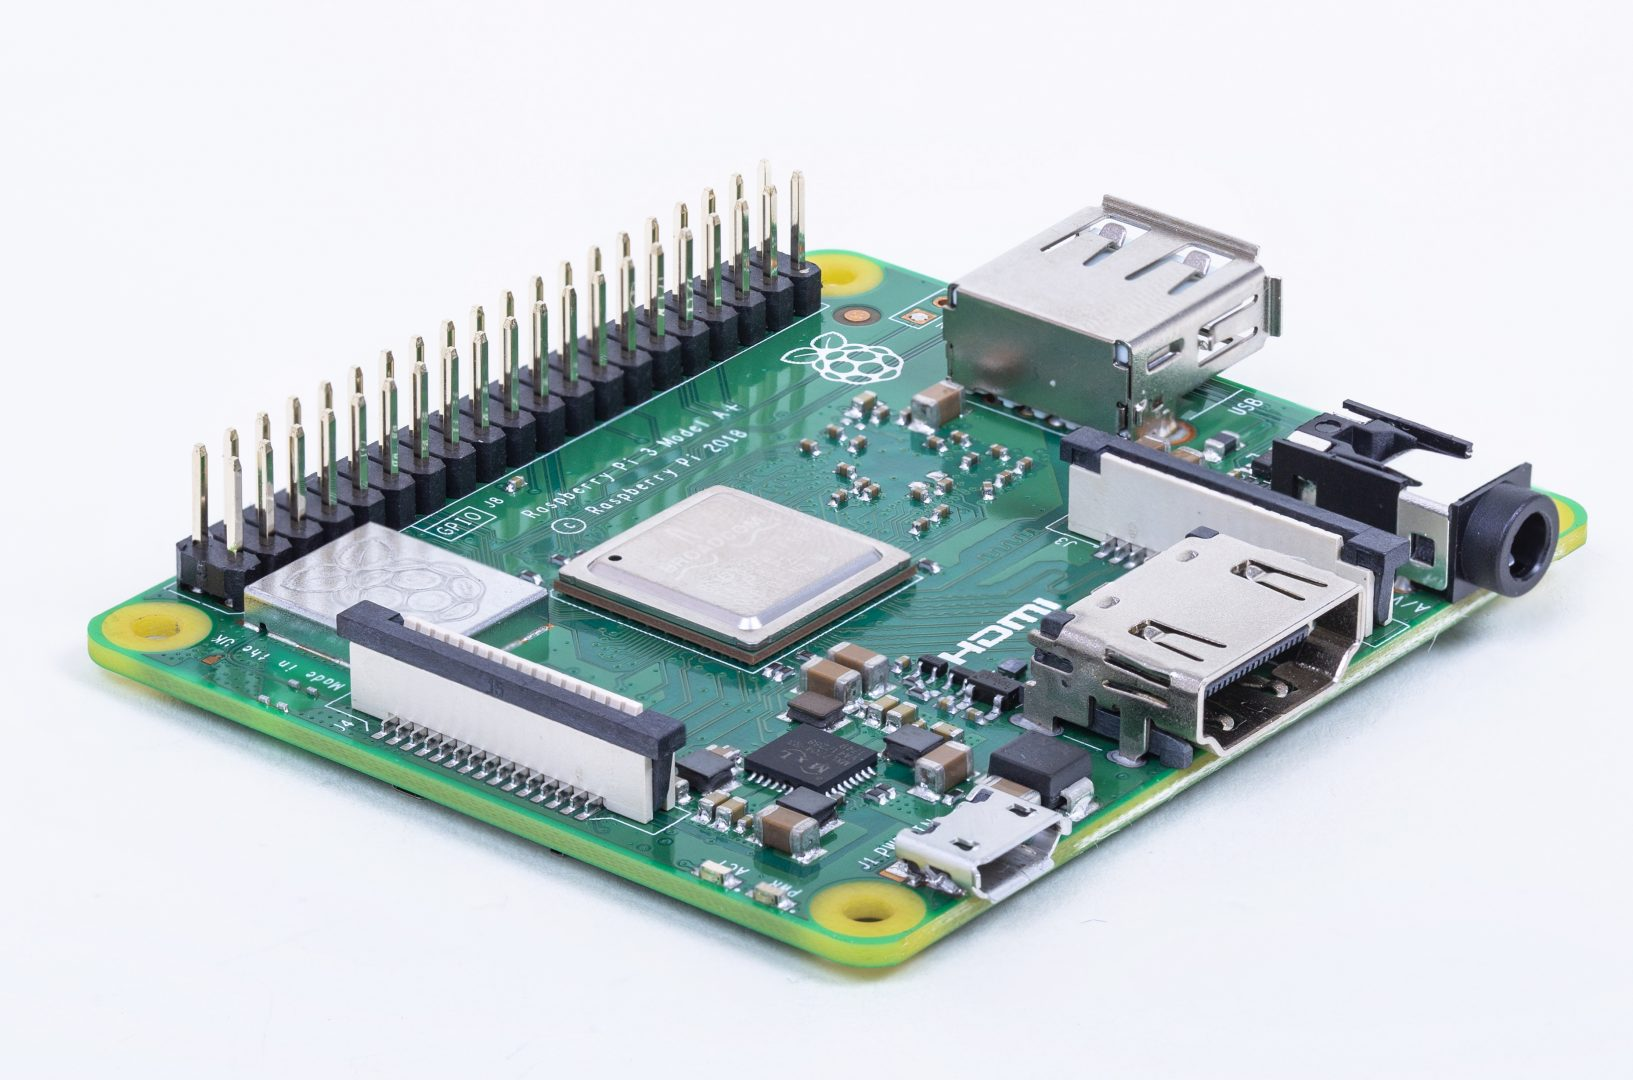 New Raspberry Pi 3 Model A+ will only cost $25